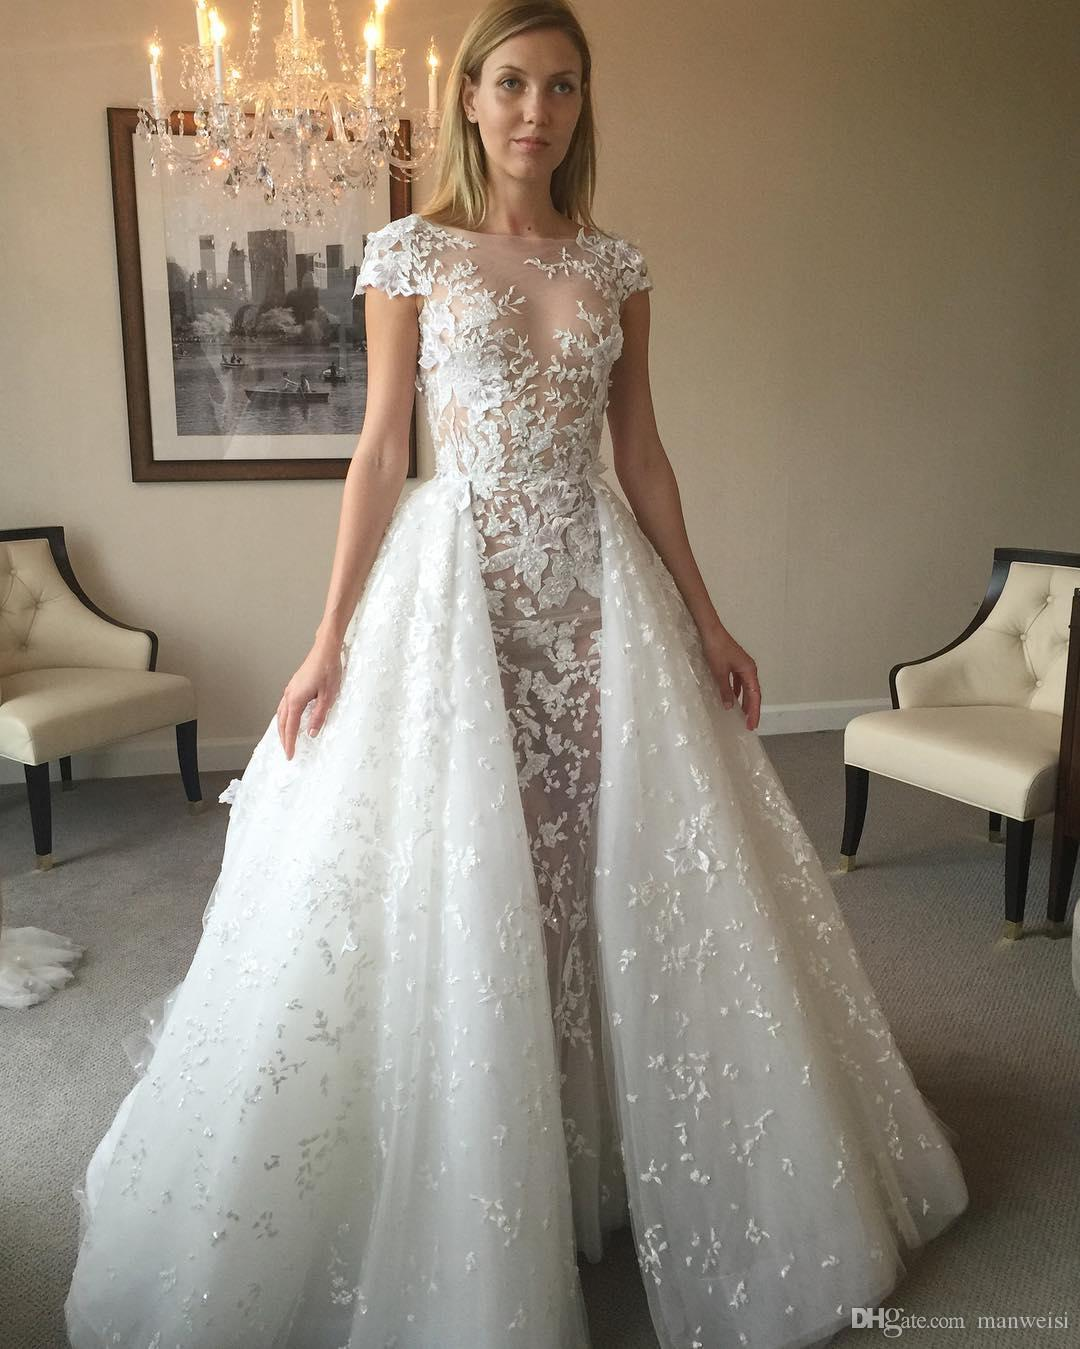 2017 Zuhair Murad Backless Mermaid Wedding Dresses With Detachable Train Lace Bridal Gowns Beaded Vintage Plus Size Wedding Dress